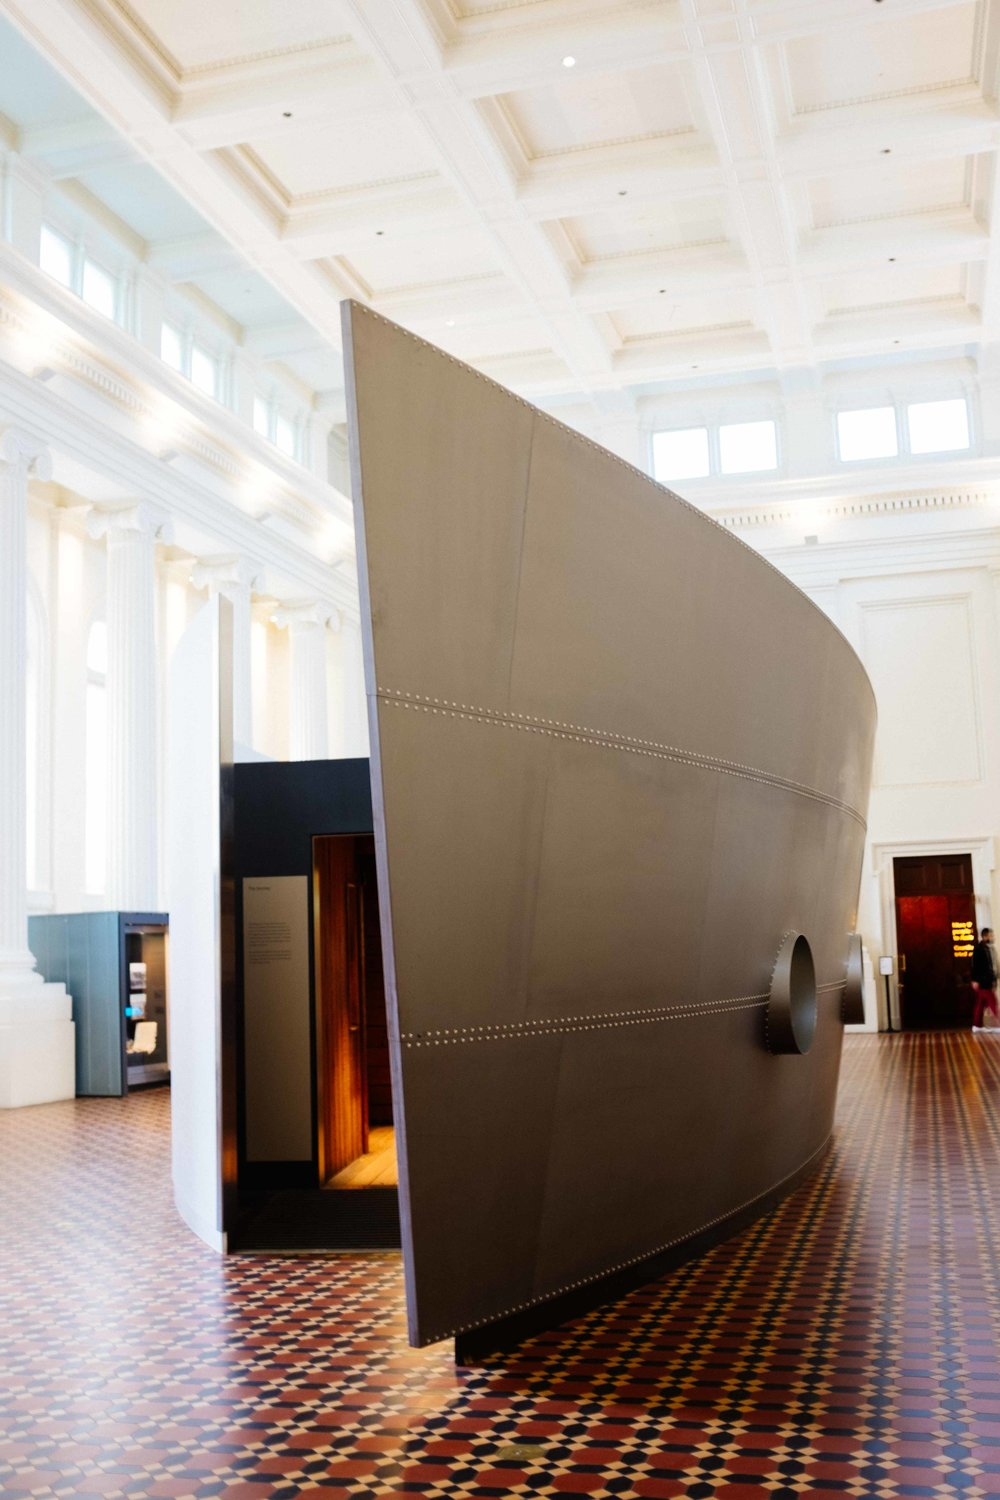 The boat inside the museum of immigration showing how immigrants arrived in Australia. Photo: Marine Raynard